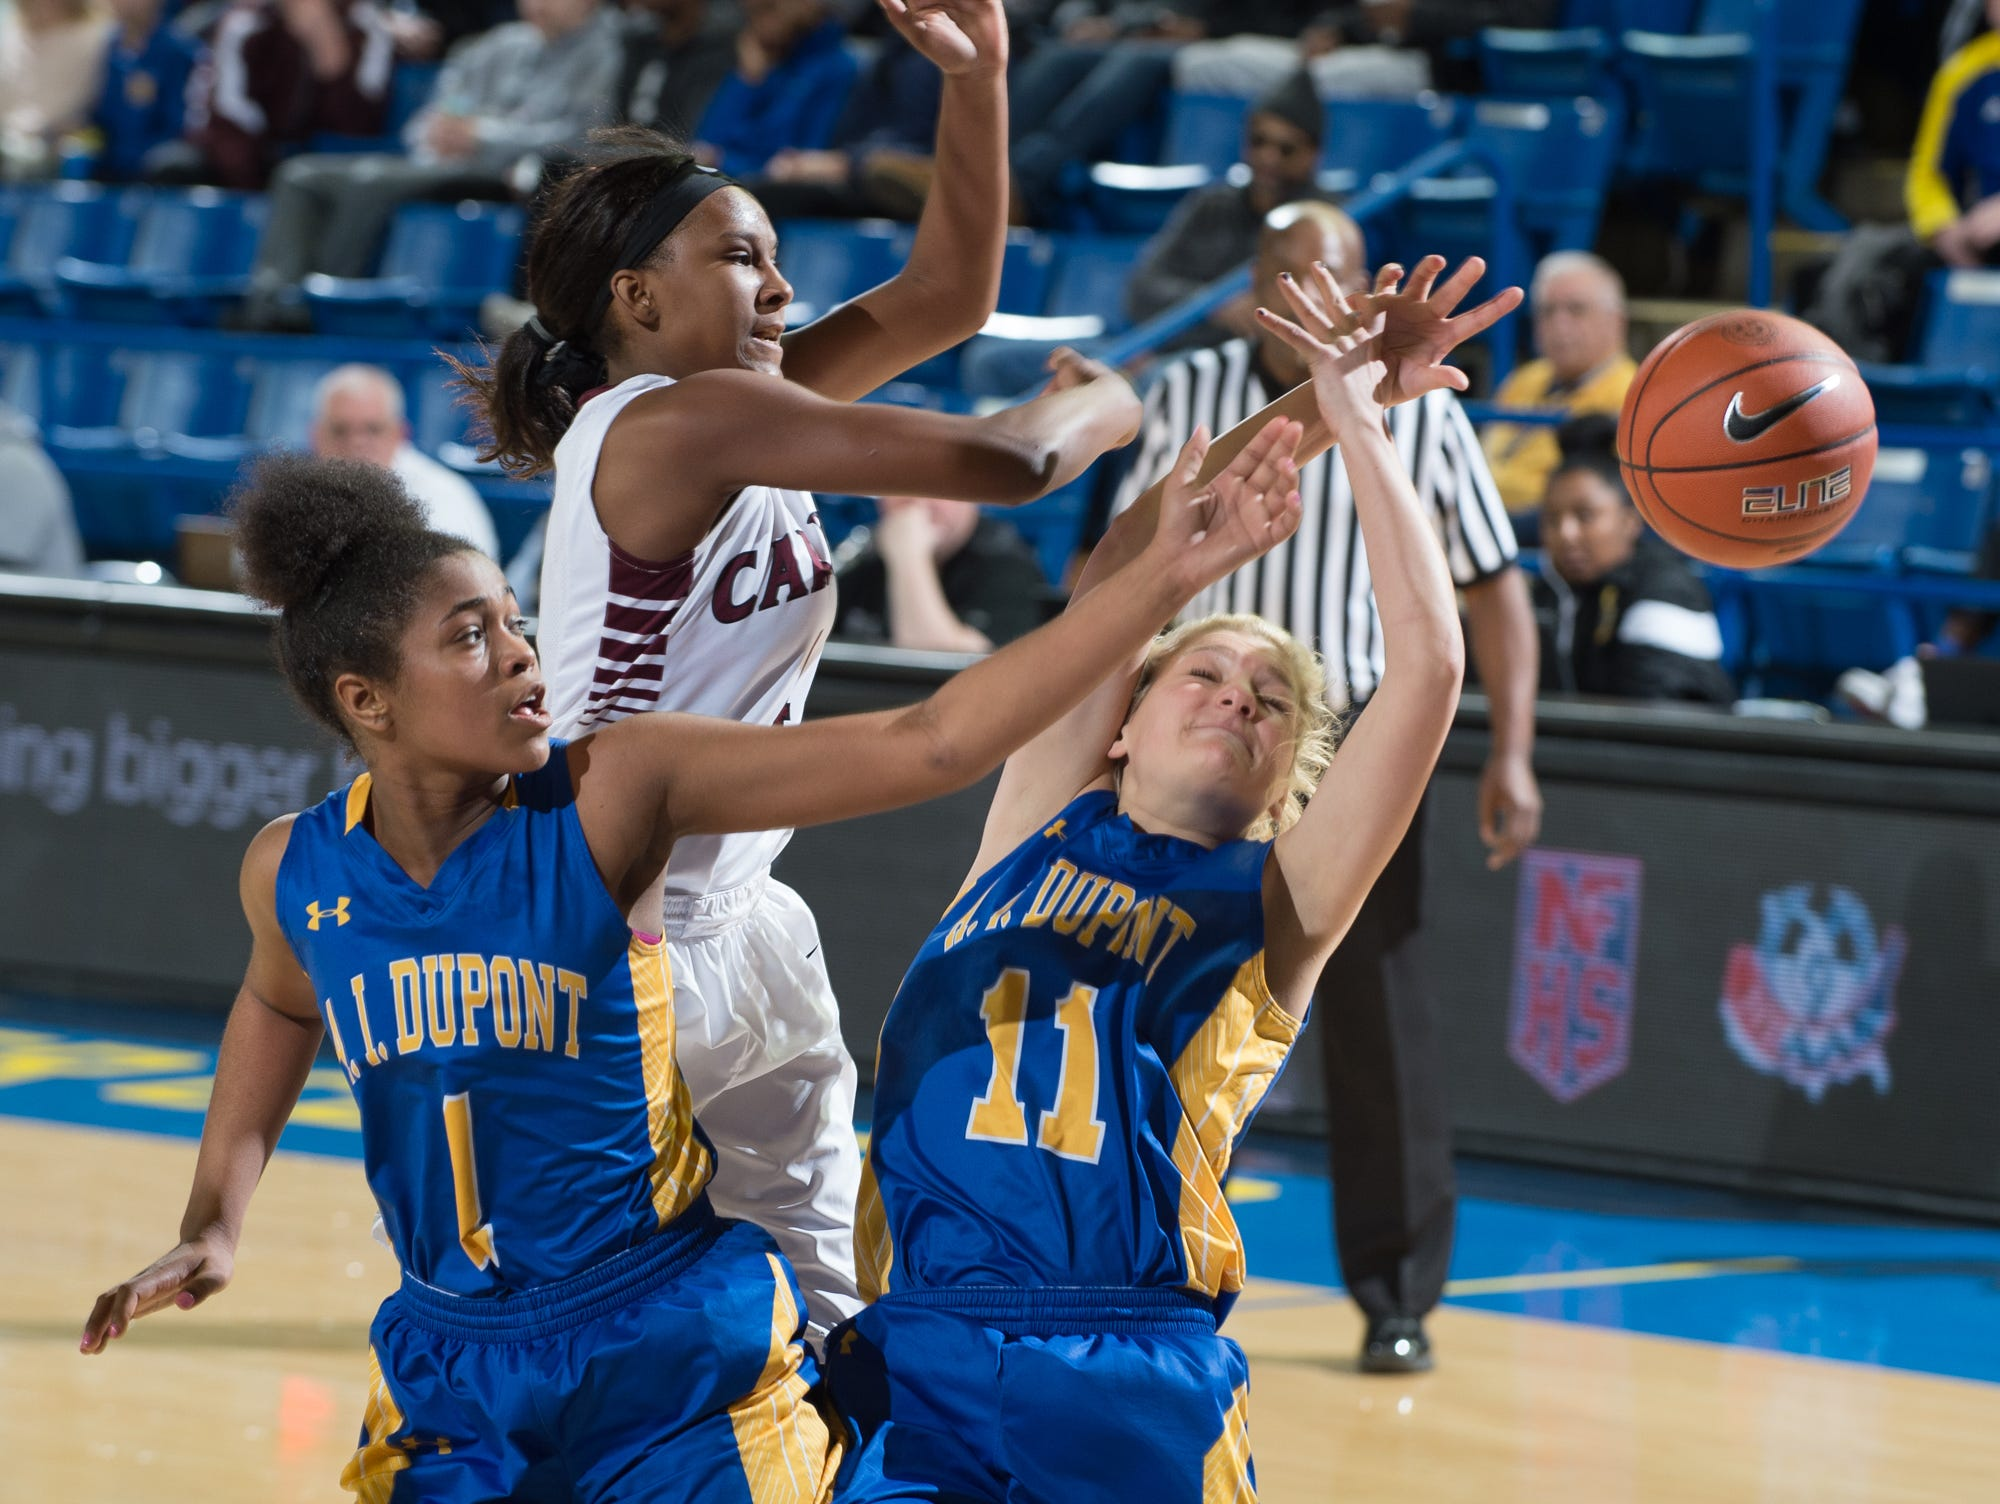 Caravel's Sasha Marvel (4), A.I. duPont's Alexandria Ferrell (1) and teammate Sydney MacDonald (11) go for a loose ball in the quarterfinals of DIAA Girls Basketball Tournament at the University of Delaware.